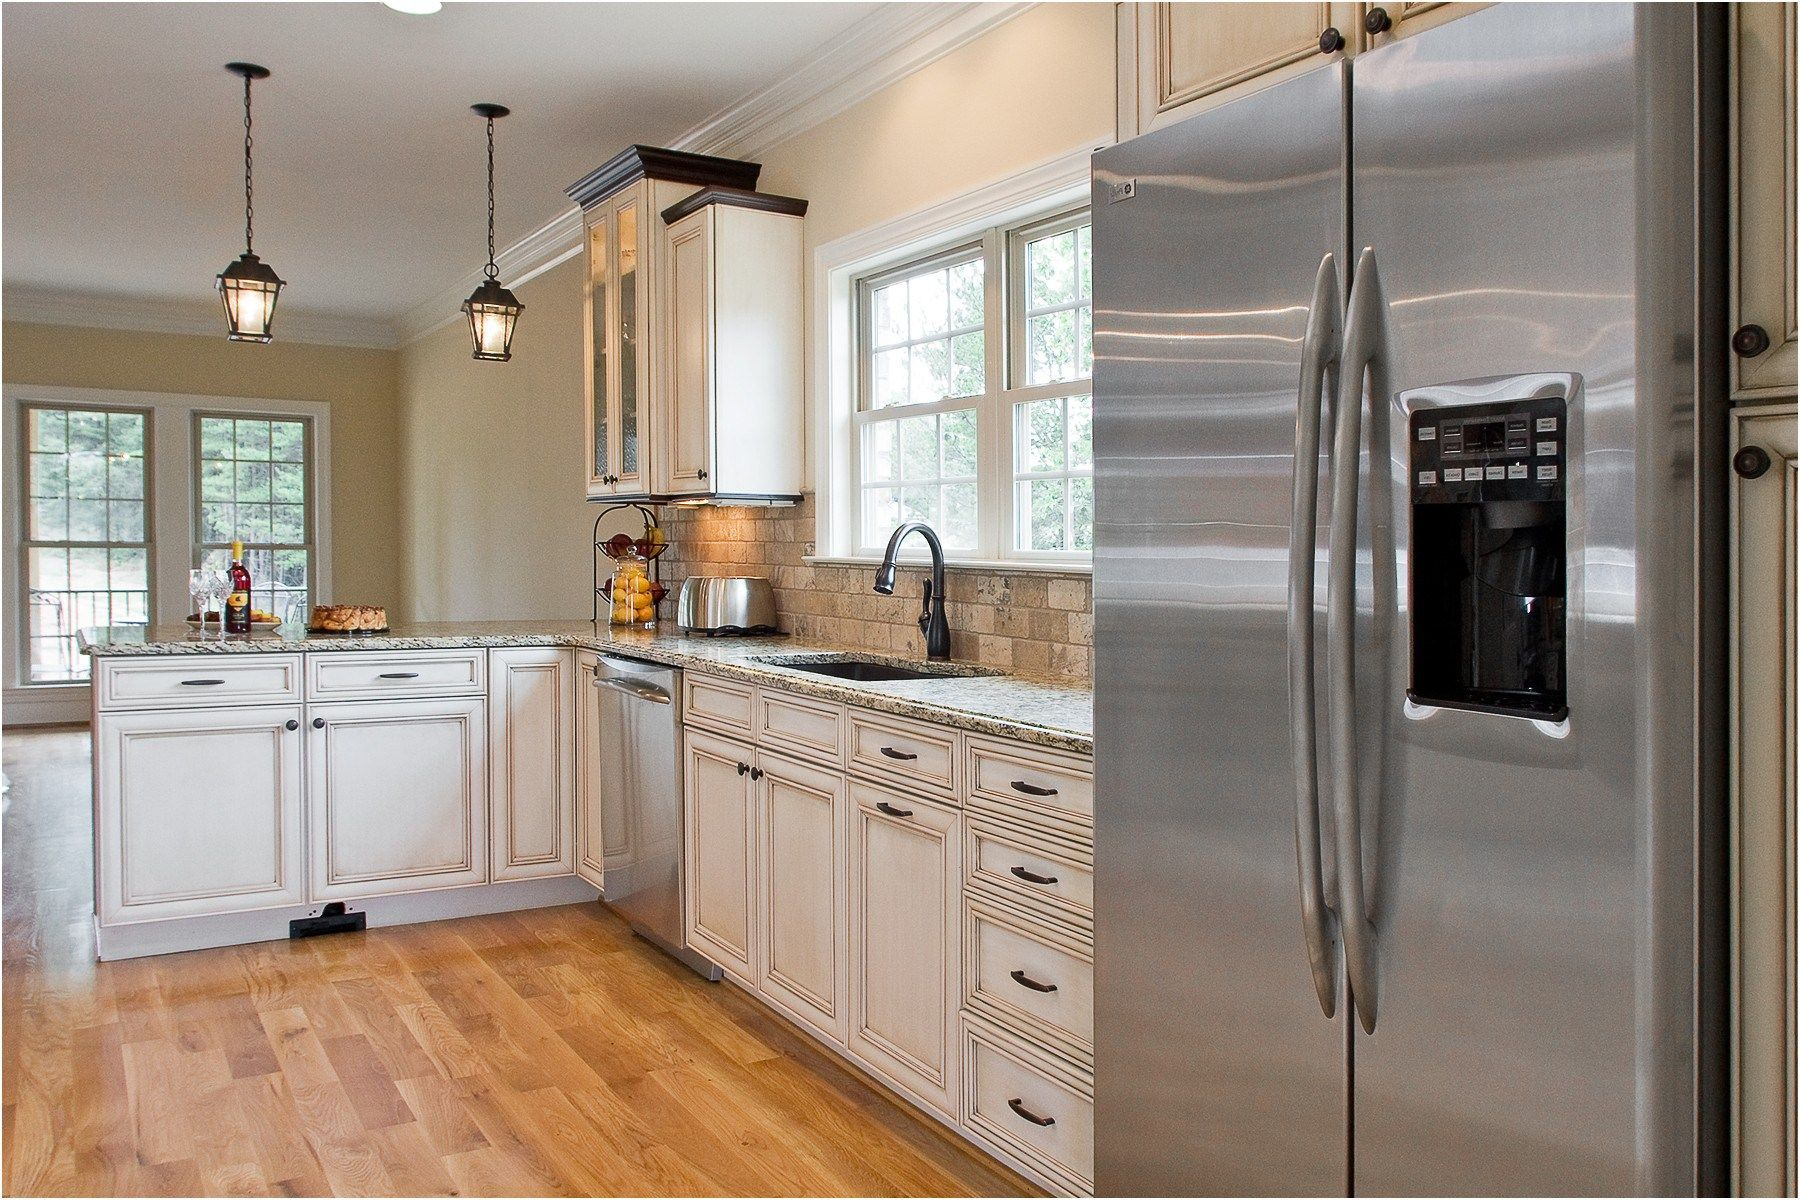 Lovely White Kitchen Stainless Steel Appliances